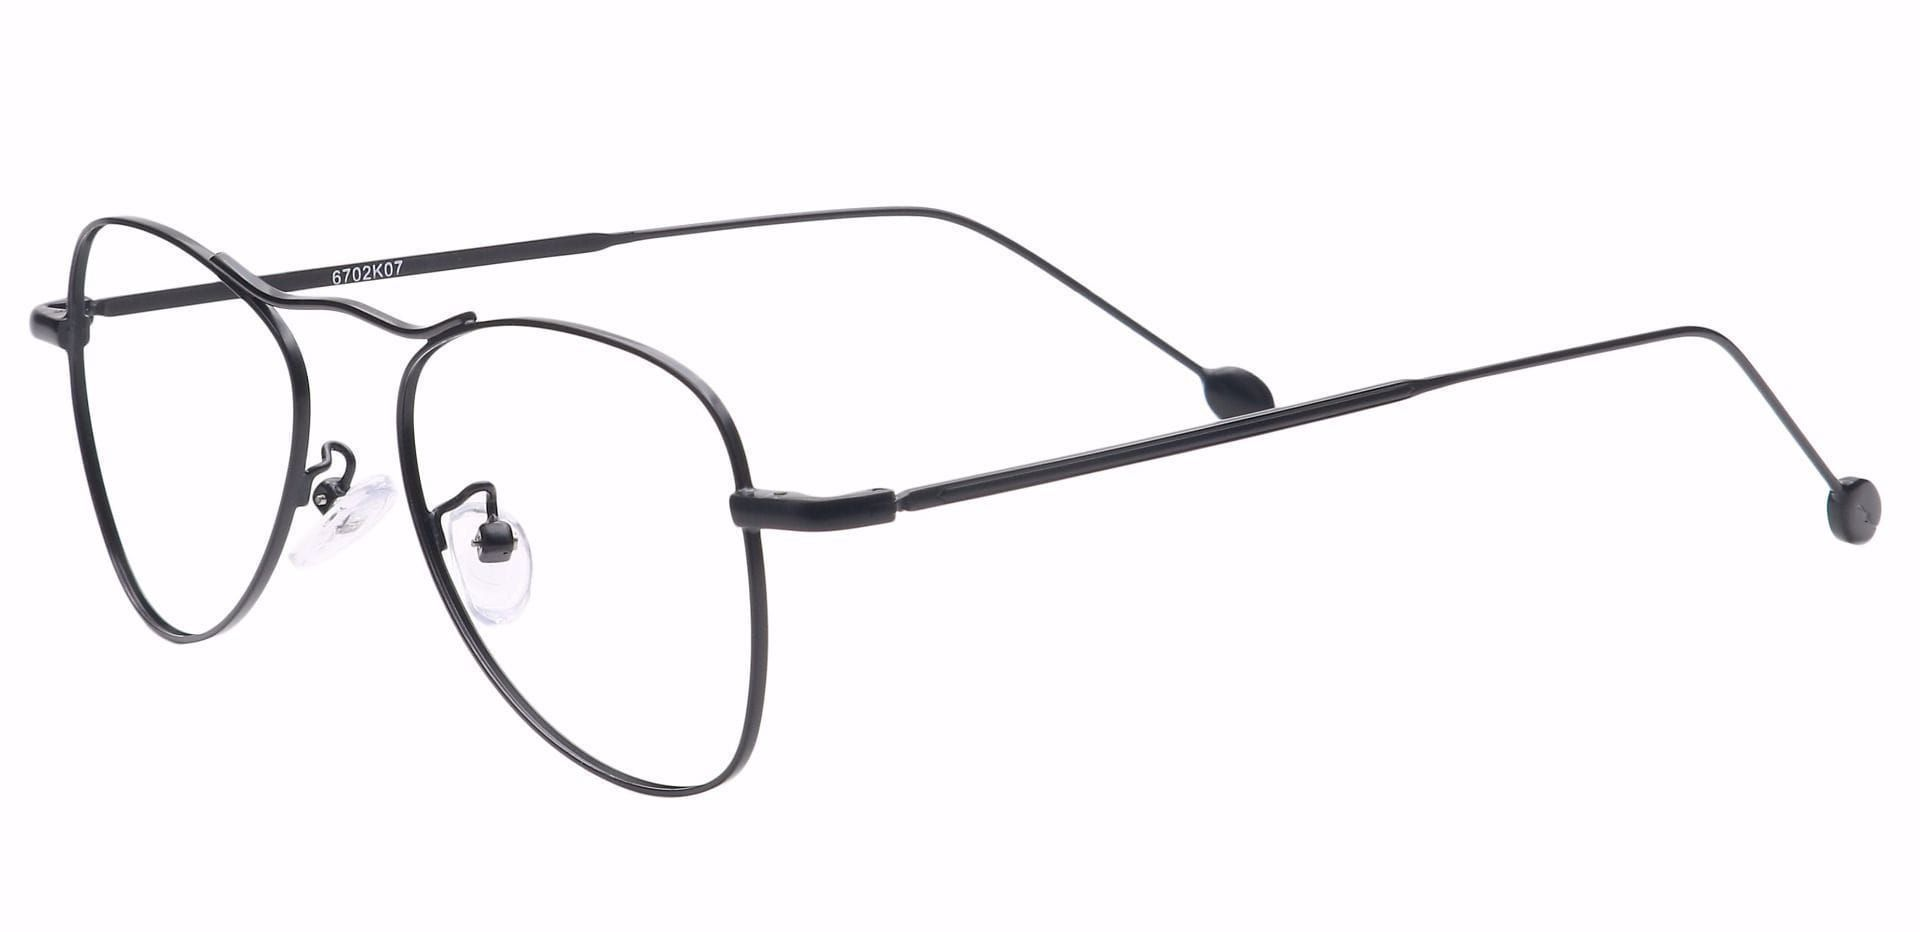 Brio Aviator Single Vision Glasses - Black